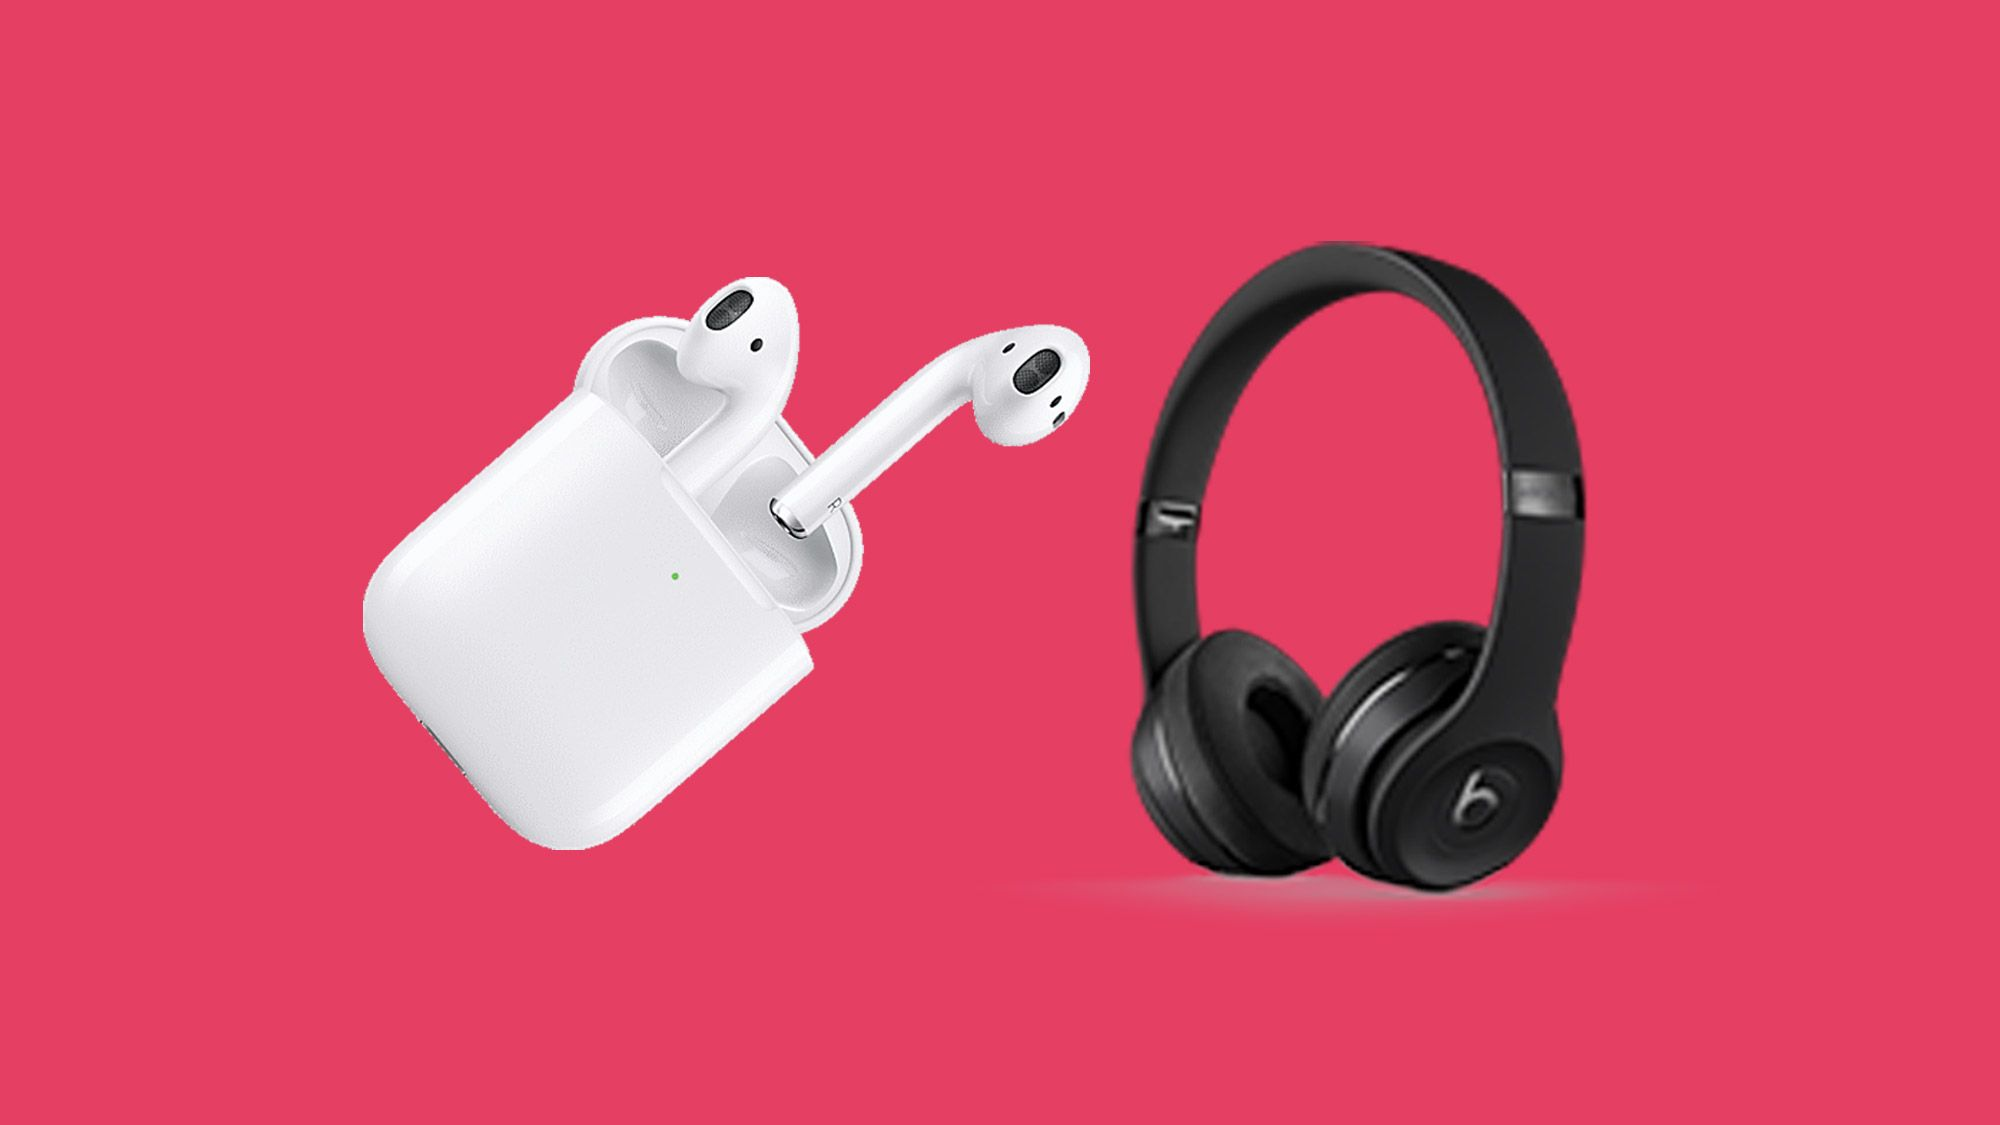 The Best Cheap Headphone Deals And Sales For August 2020 Cheap Headphones Best Cheap Headphones Headphone